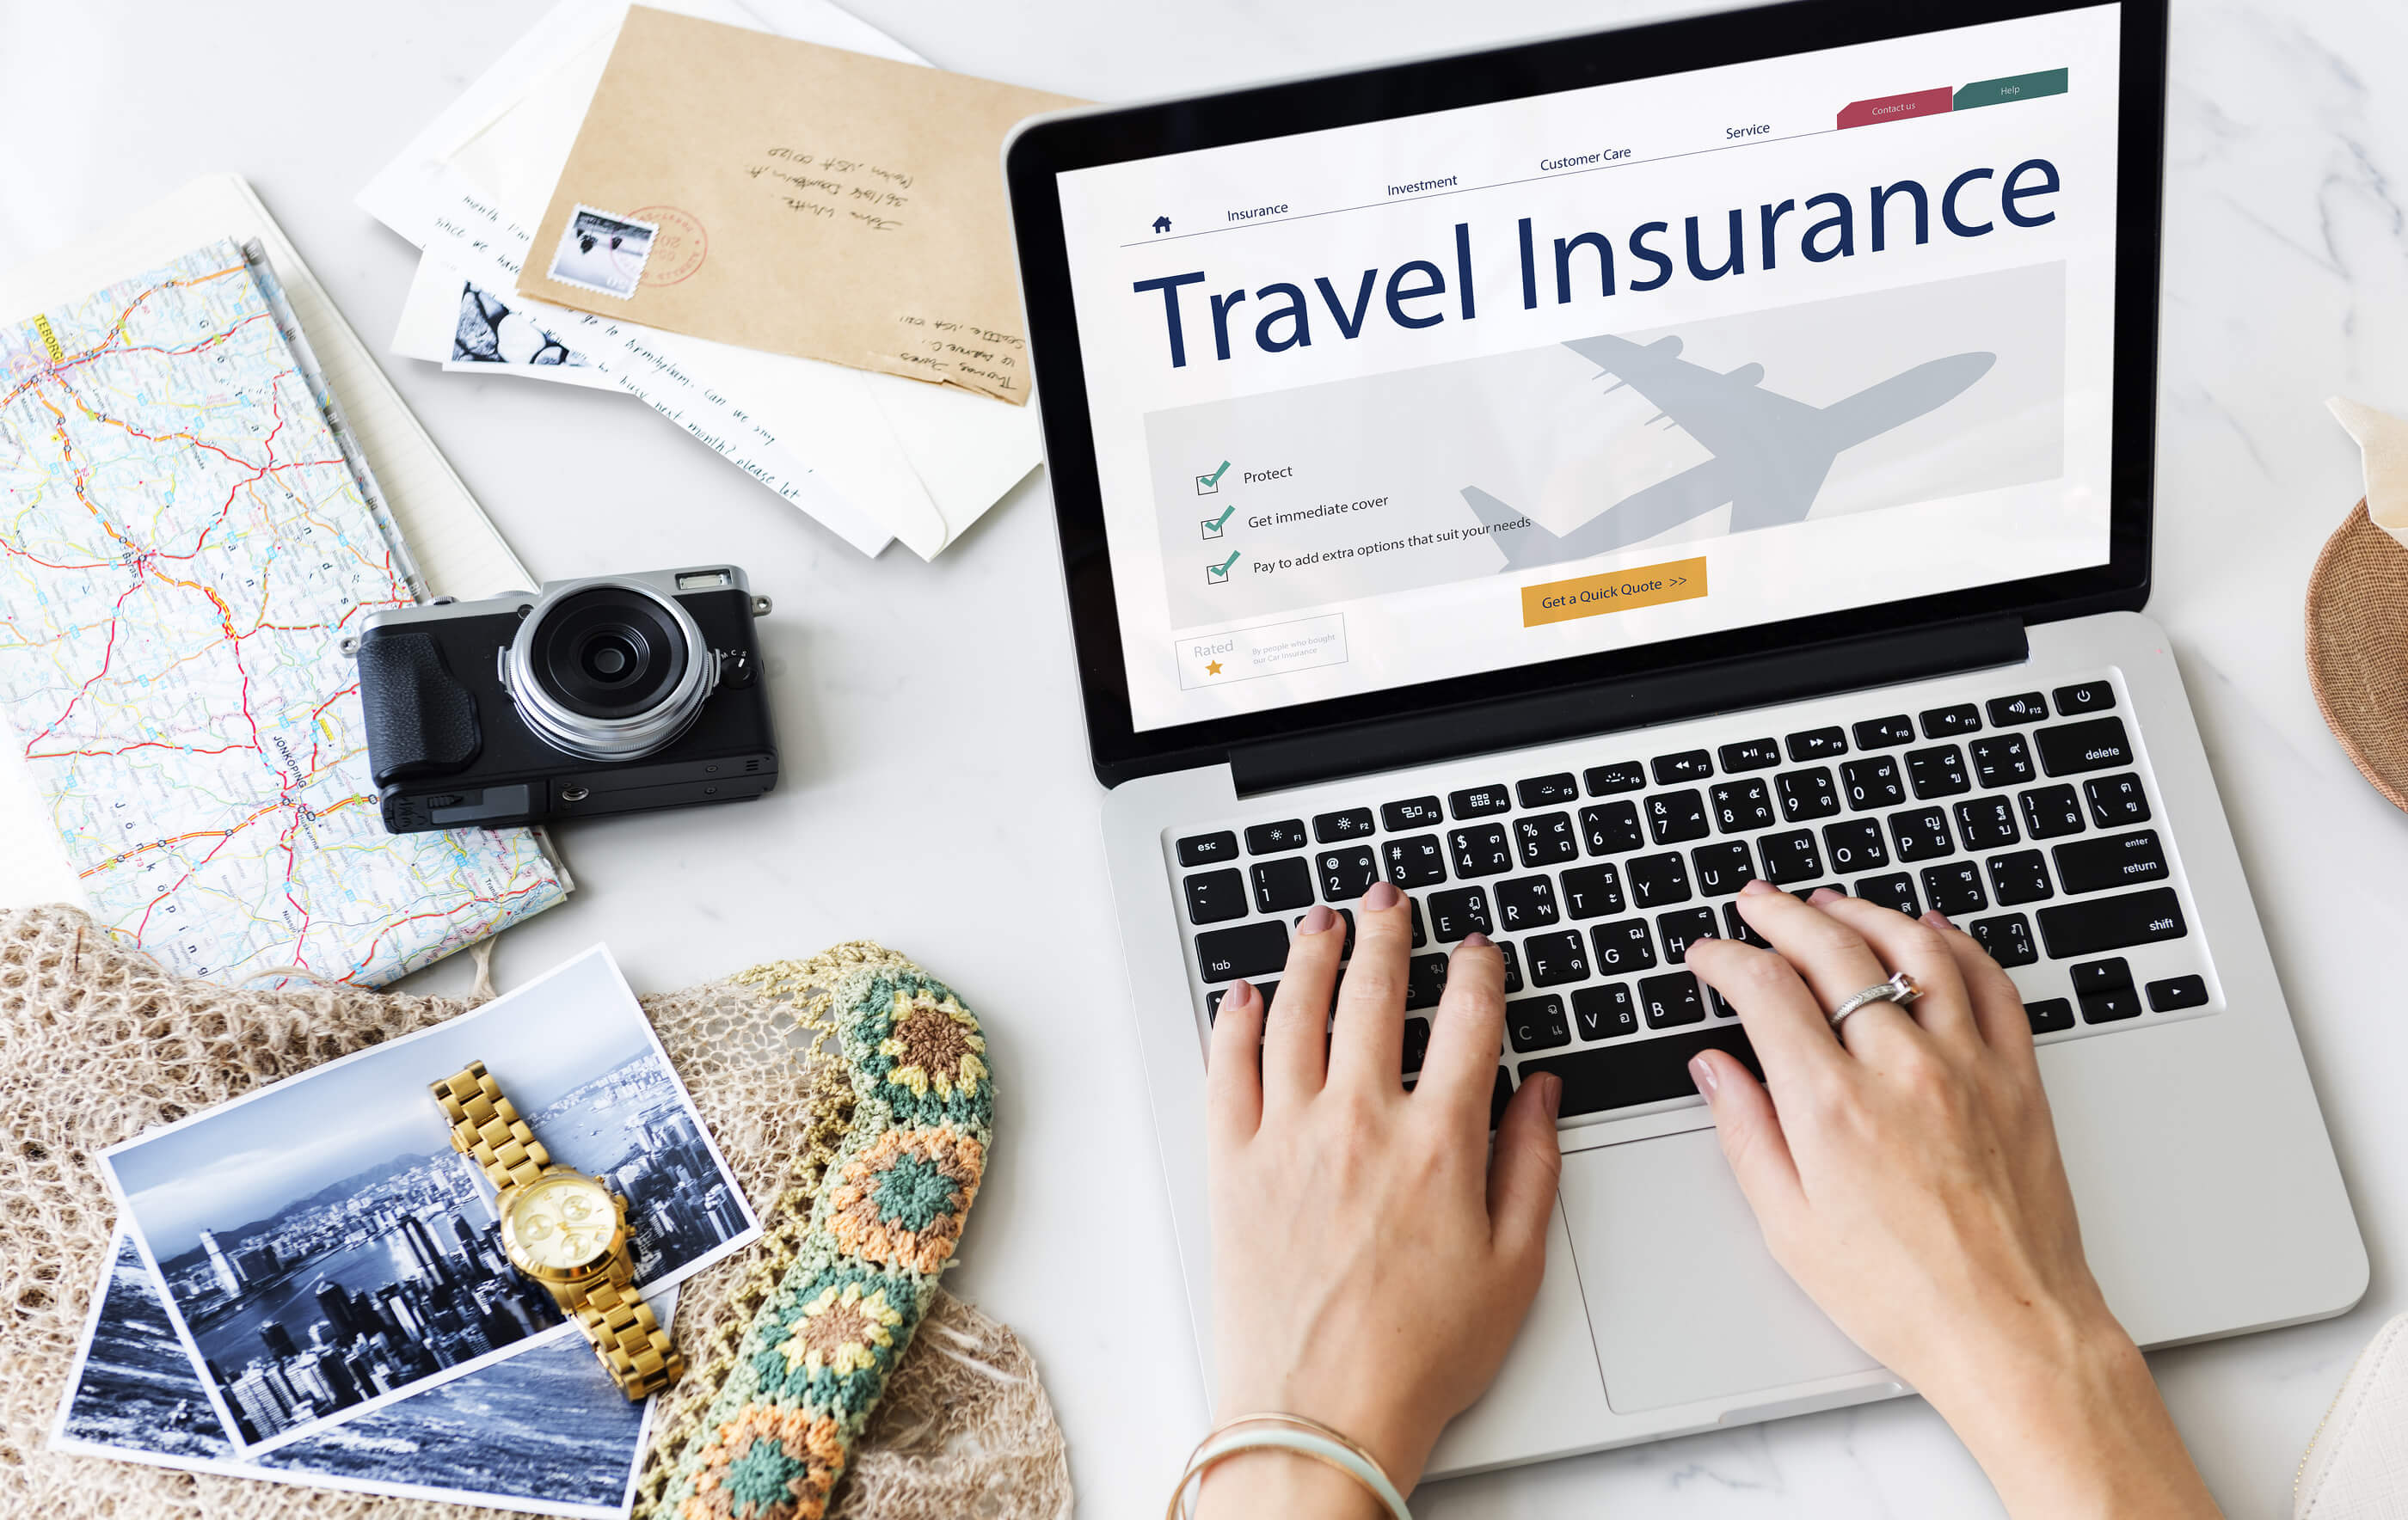 is travel insurance worth it, allianz travel insurance, why is travel insurance an important investment, types of travel insurance, what does travel insurance cover, travel insurance plans, should i get travel insurance best travel insurance, Emergency medical evacuation, Bankruptcy filed travel company